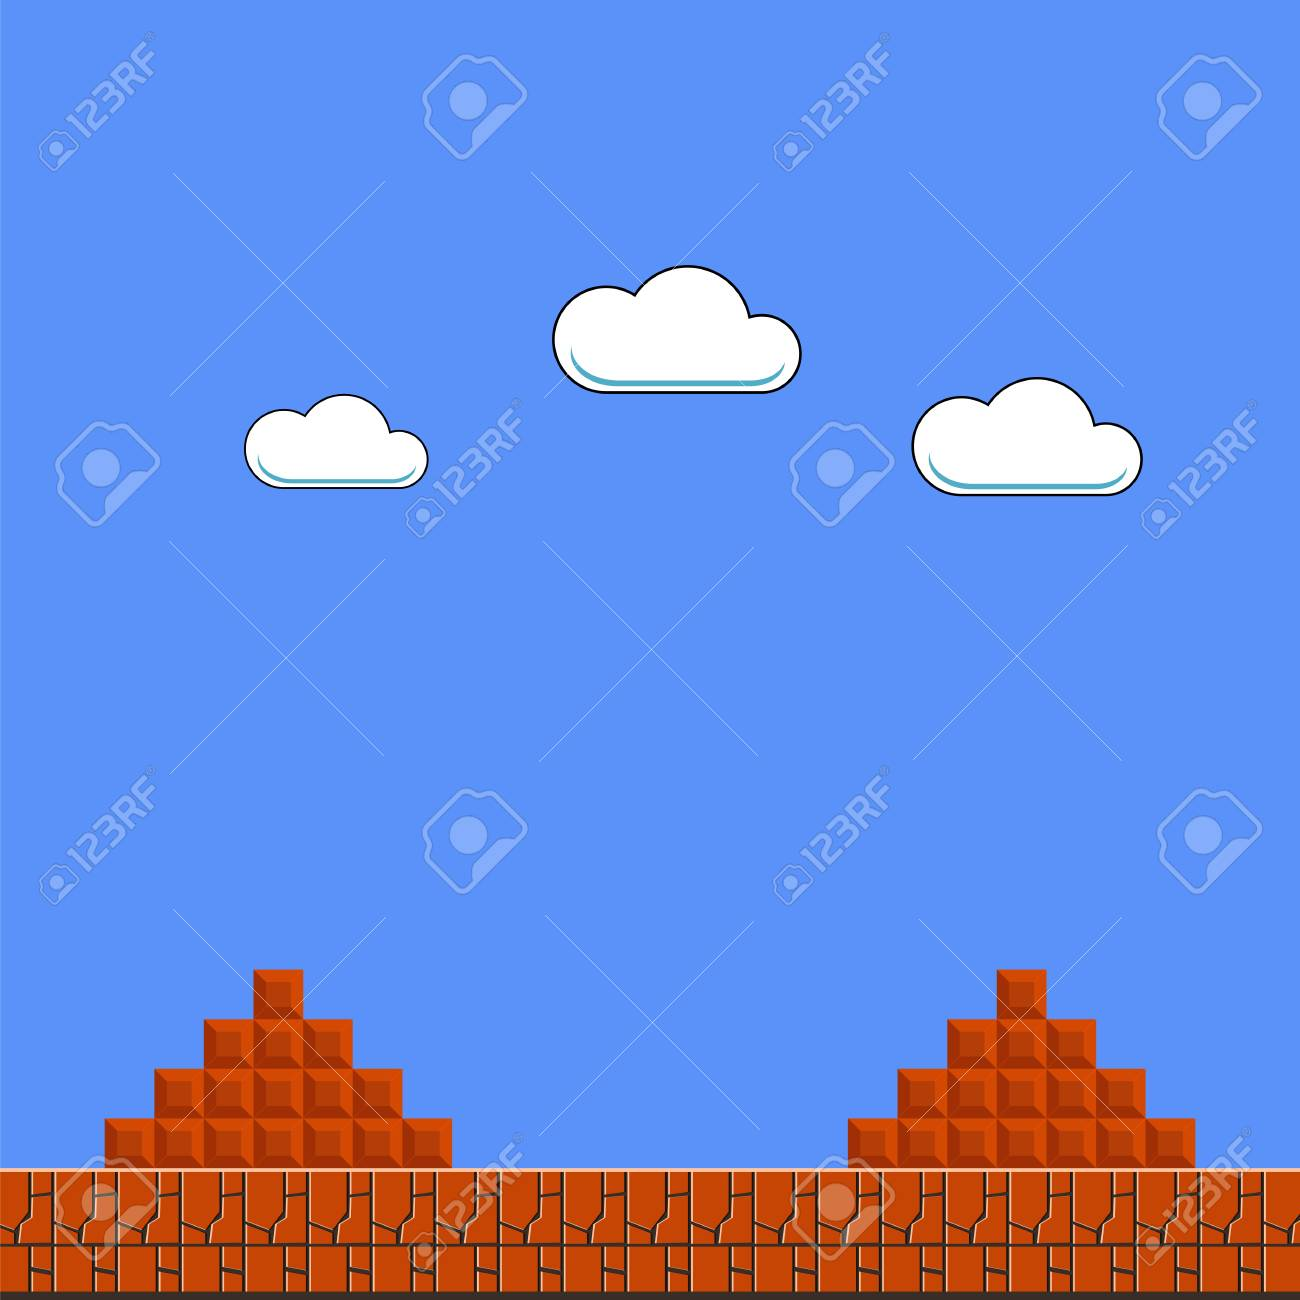 Old Game Background. Classic Retro Arcade Design with Clouds and Brick - 109454608